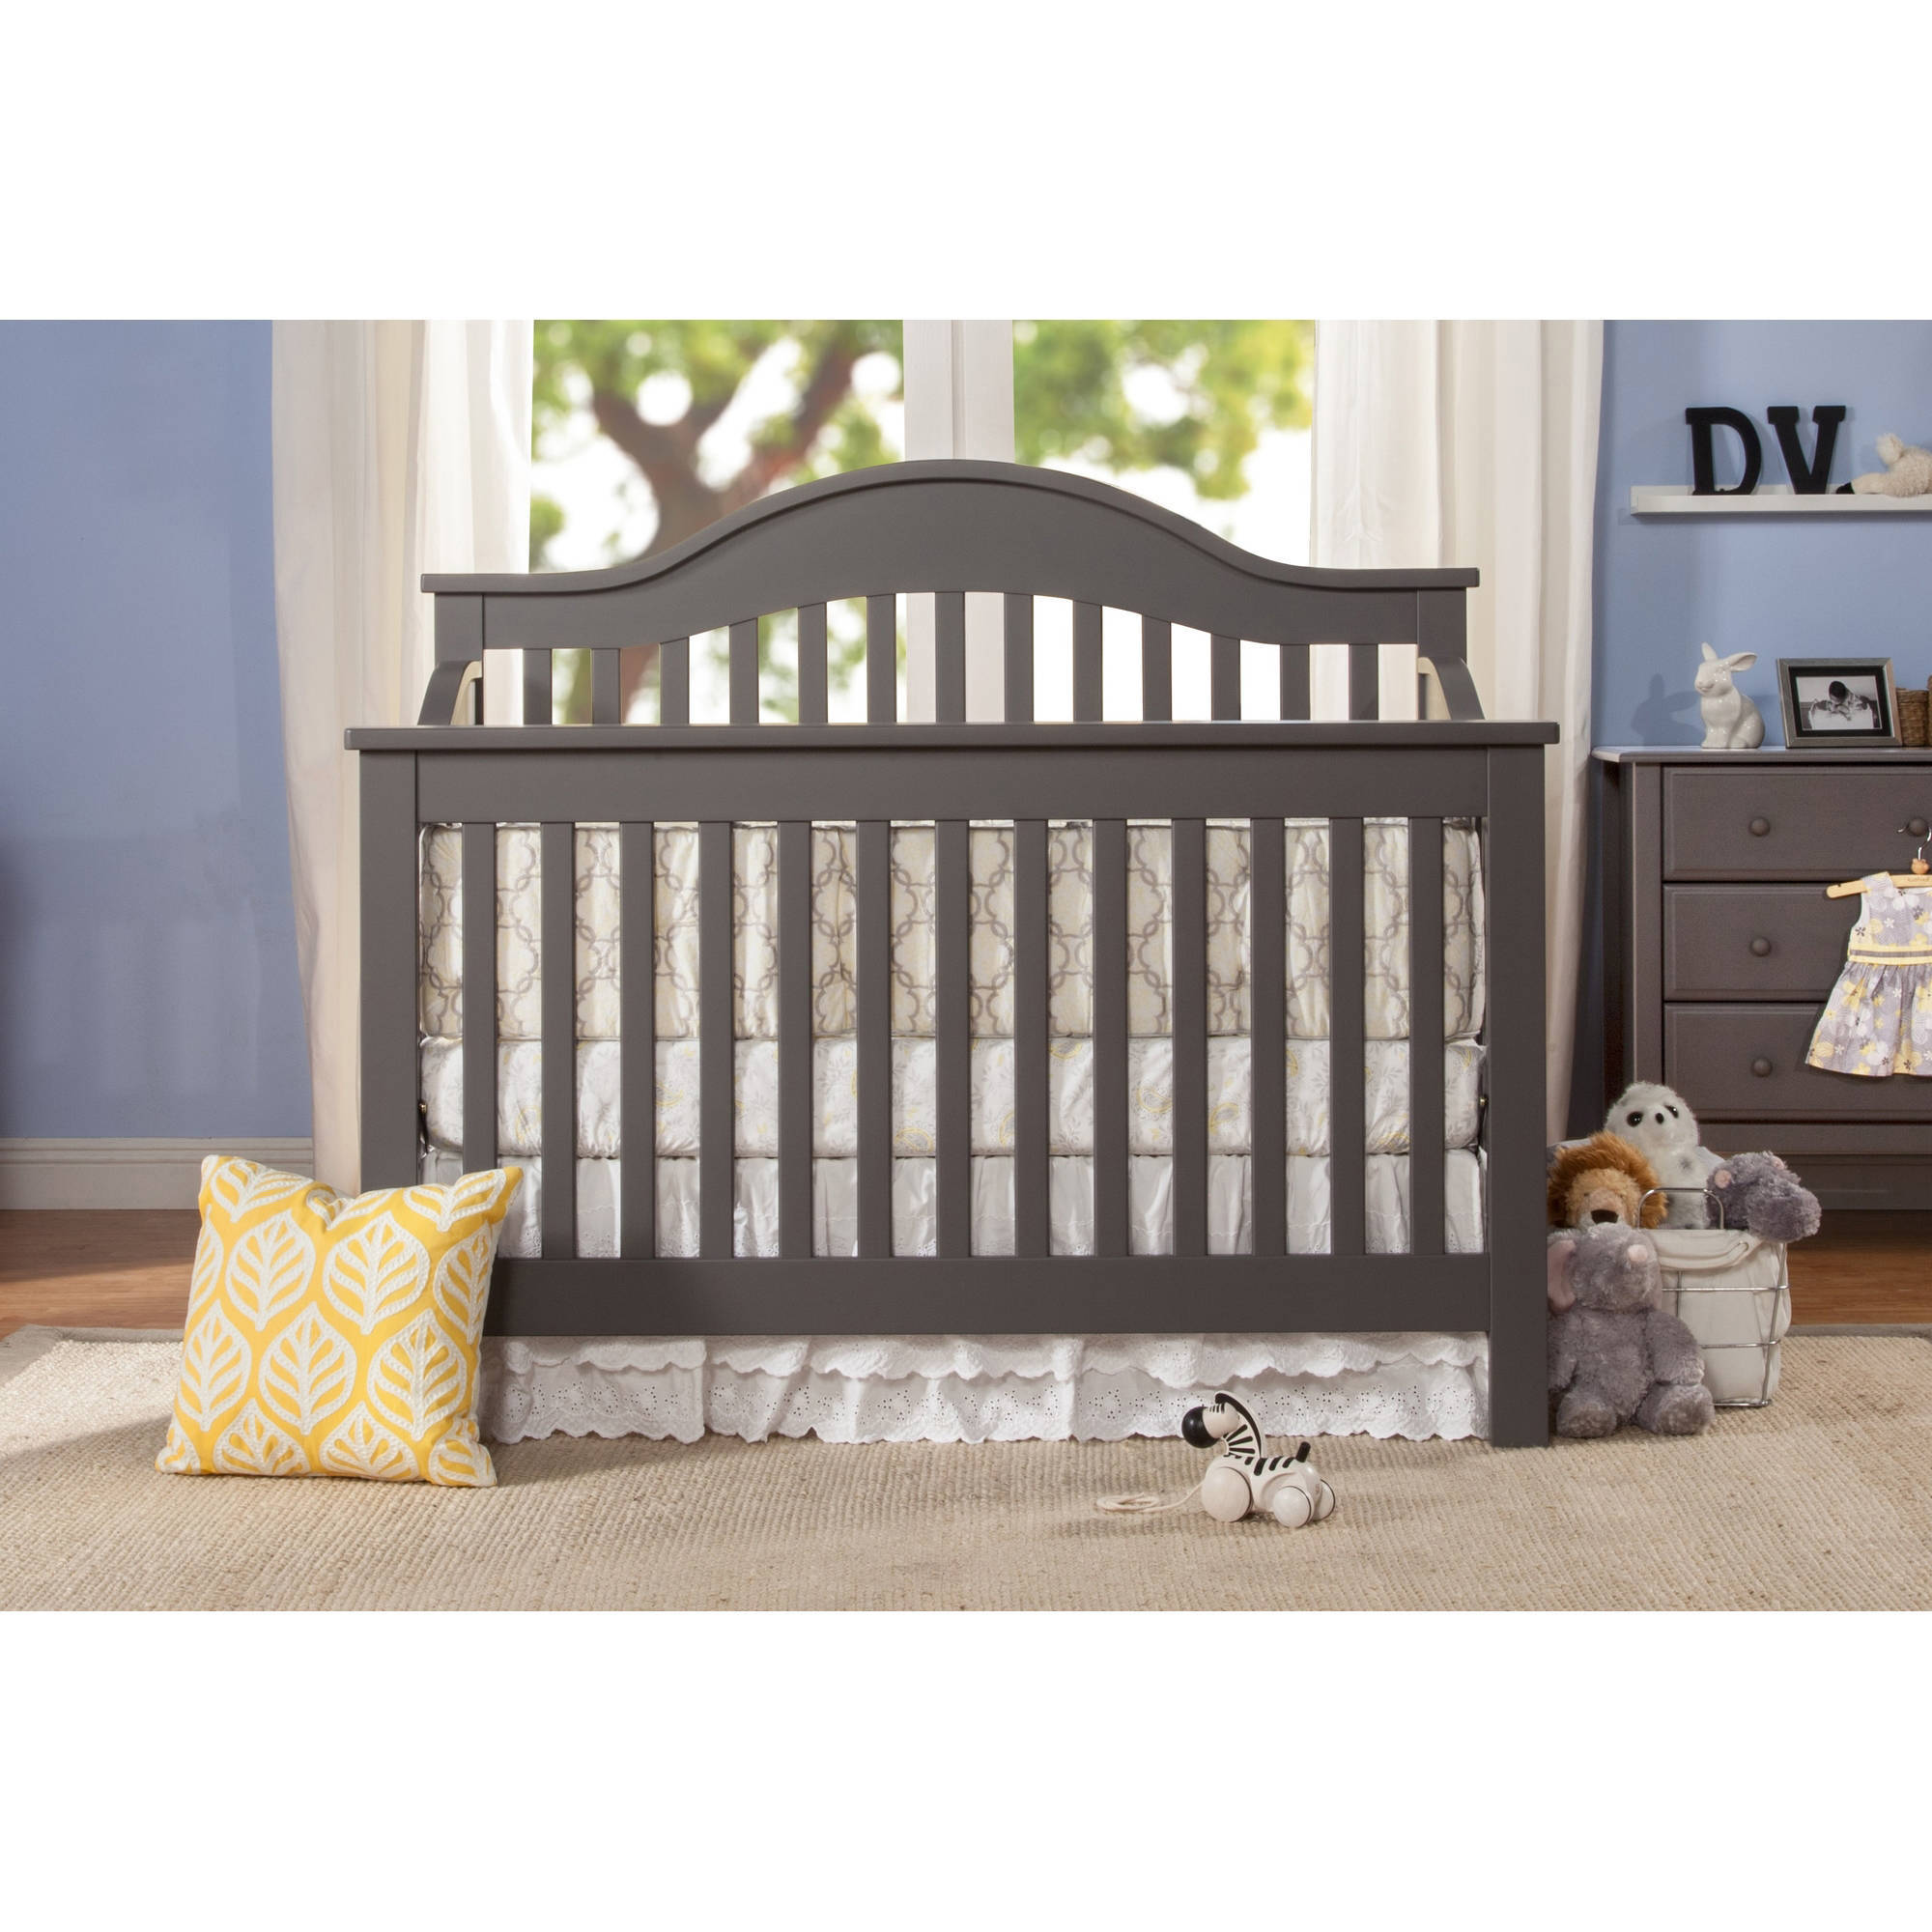 Crib Toddler Bed Combo Brixy Haven Upholstered Cottage